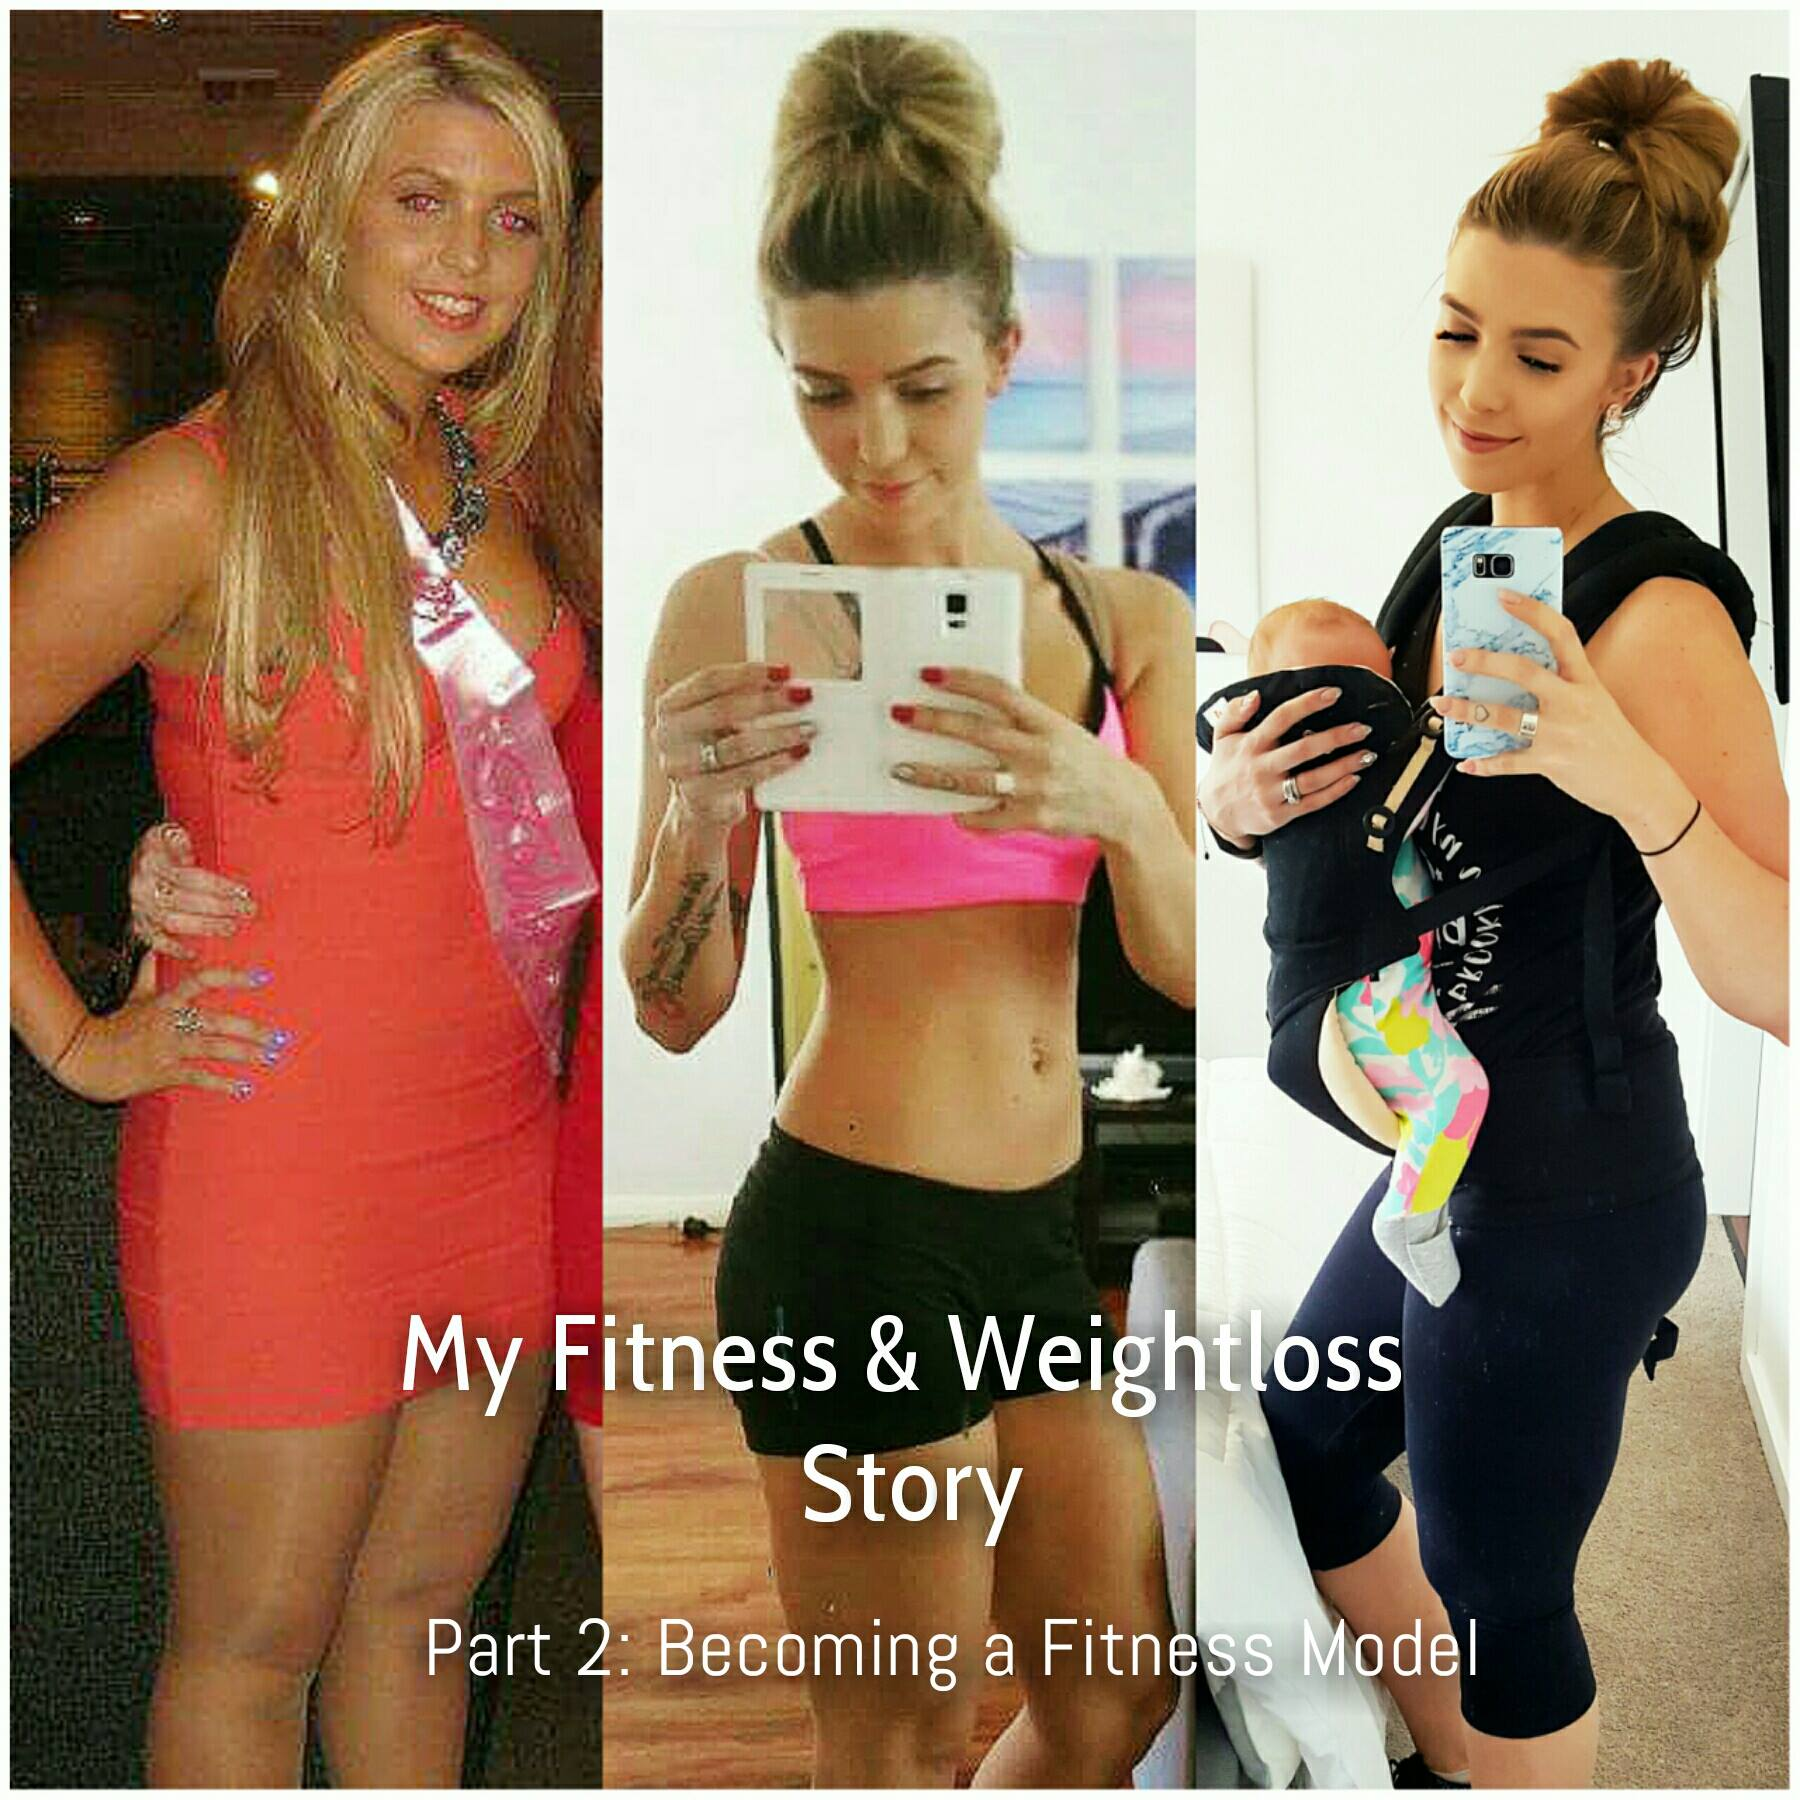 My Fitness & Weightloss Journey: Part 2 Becoming a Fitness Model